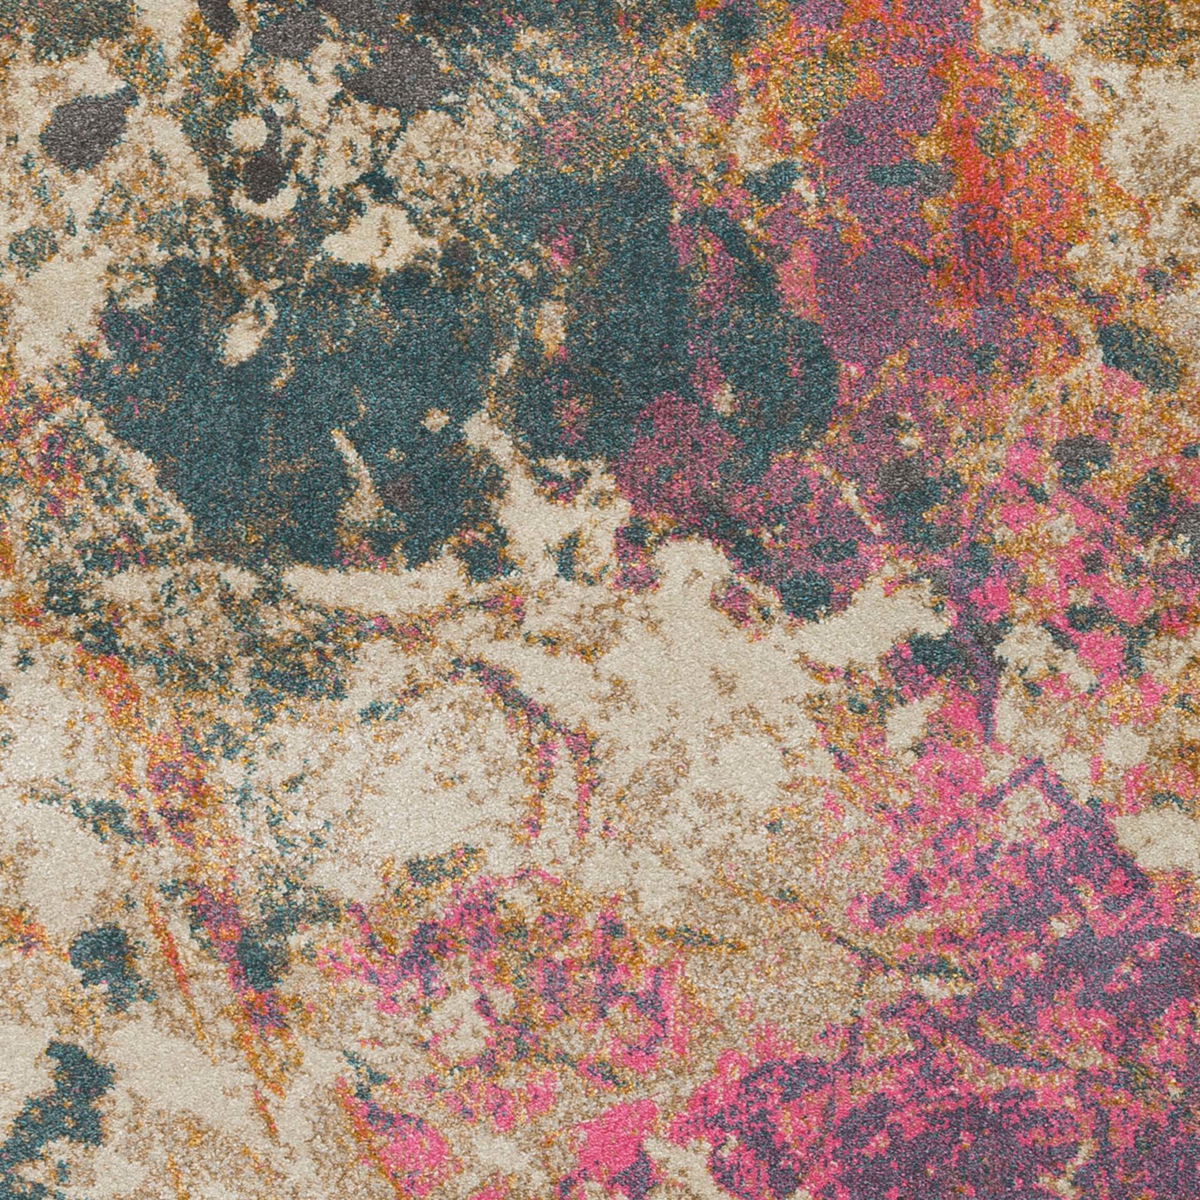 Abstract Turkish cream rug with splashes of pink, teal and orange - Detailed Shot